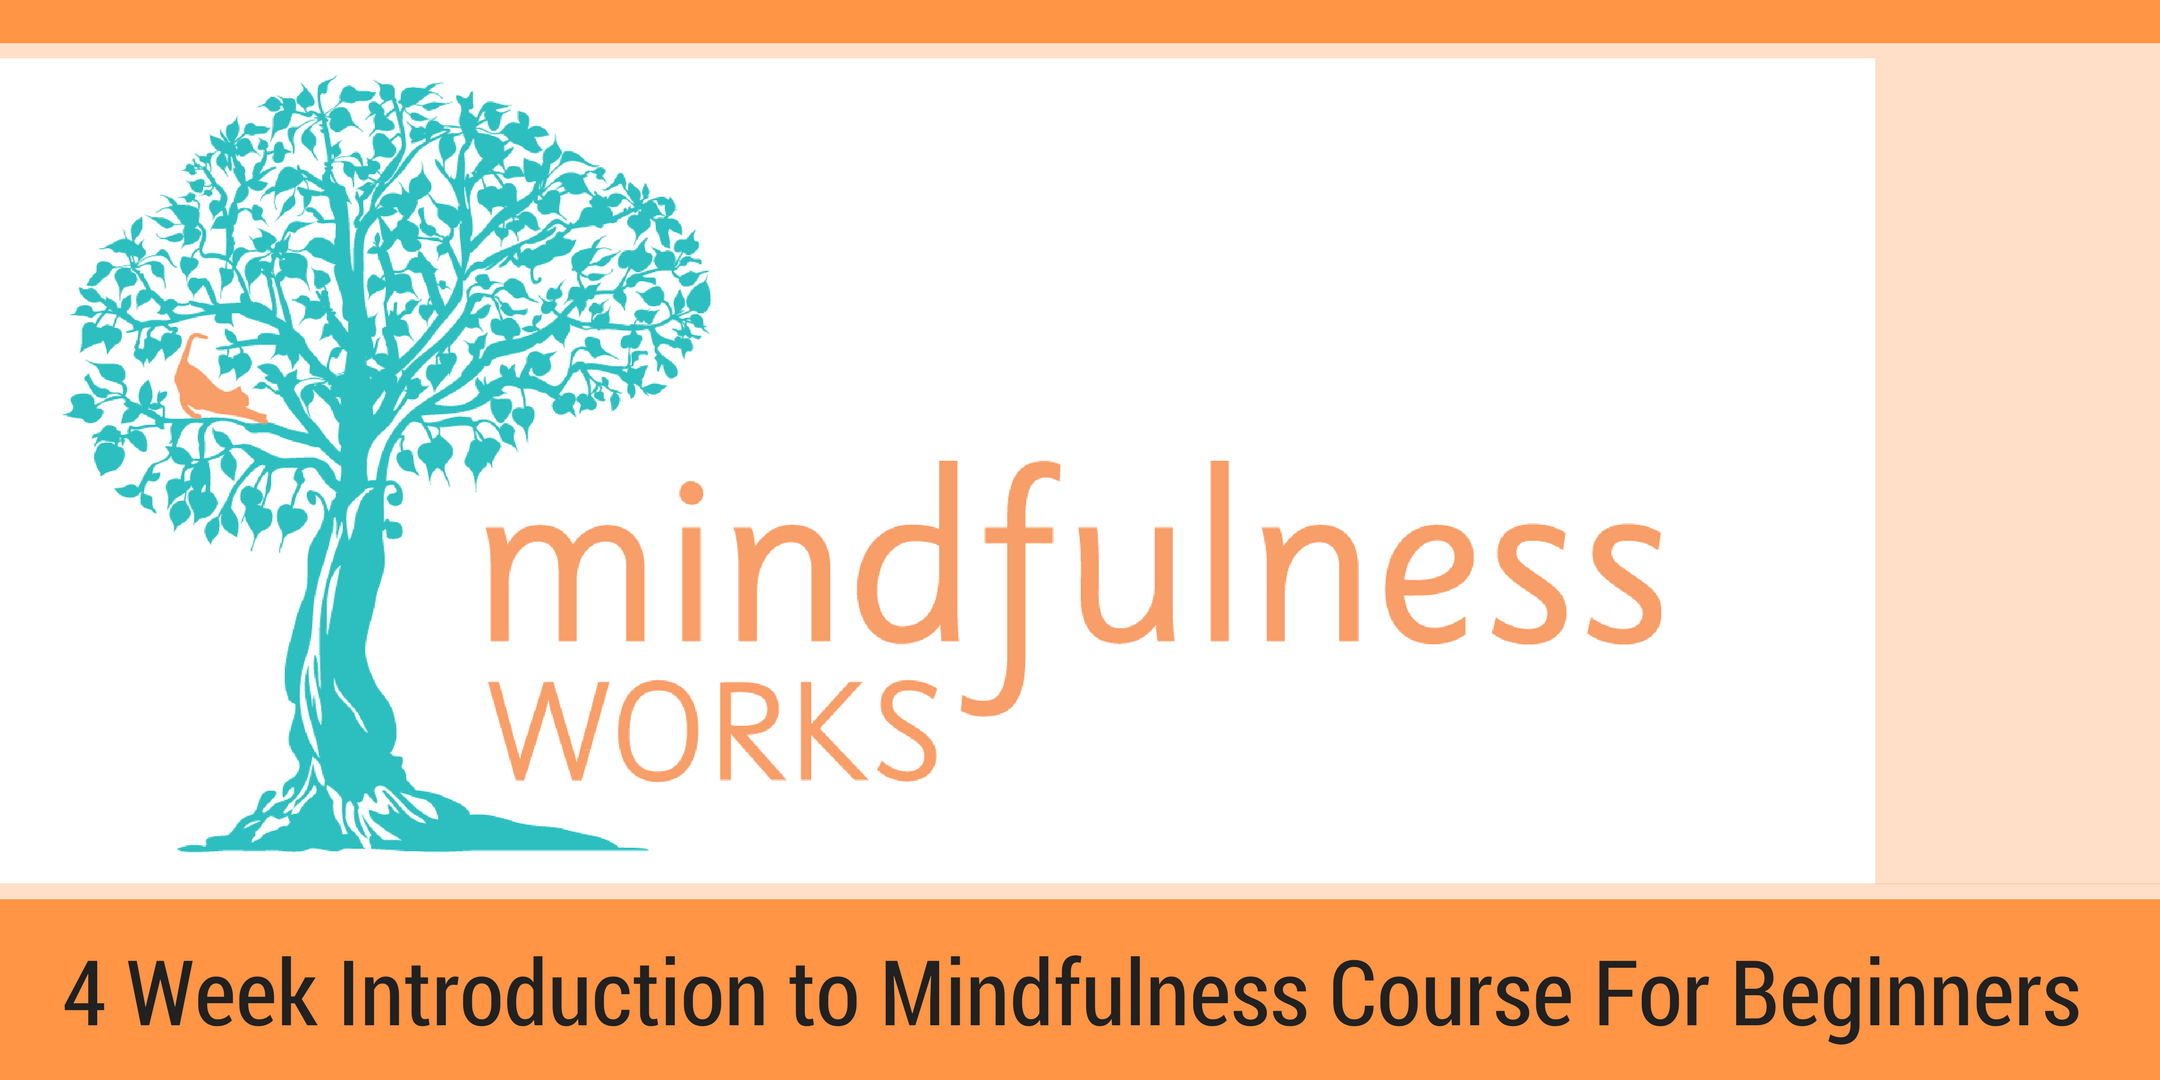 Geelong – An Introduction to Mindfulness & Meditation 4 Week Course